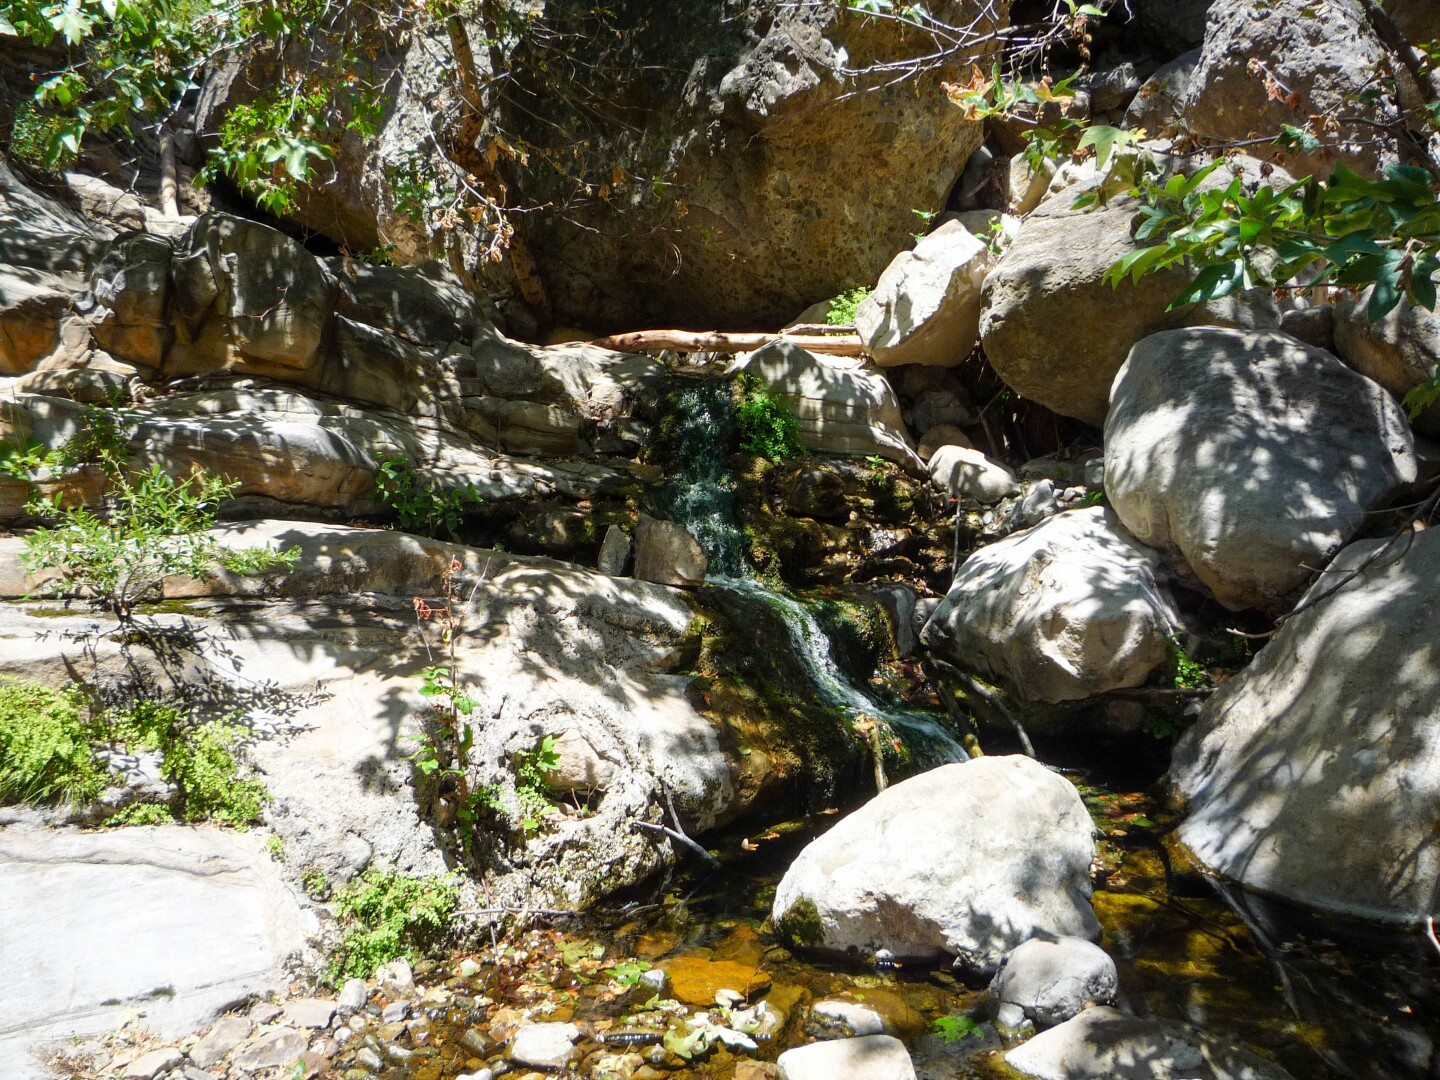 A stream at the Solstice Canyon hike in the Santa Monica Mountains.